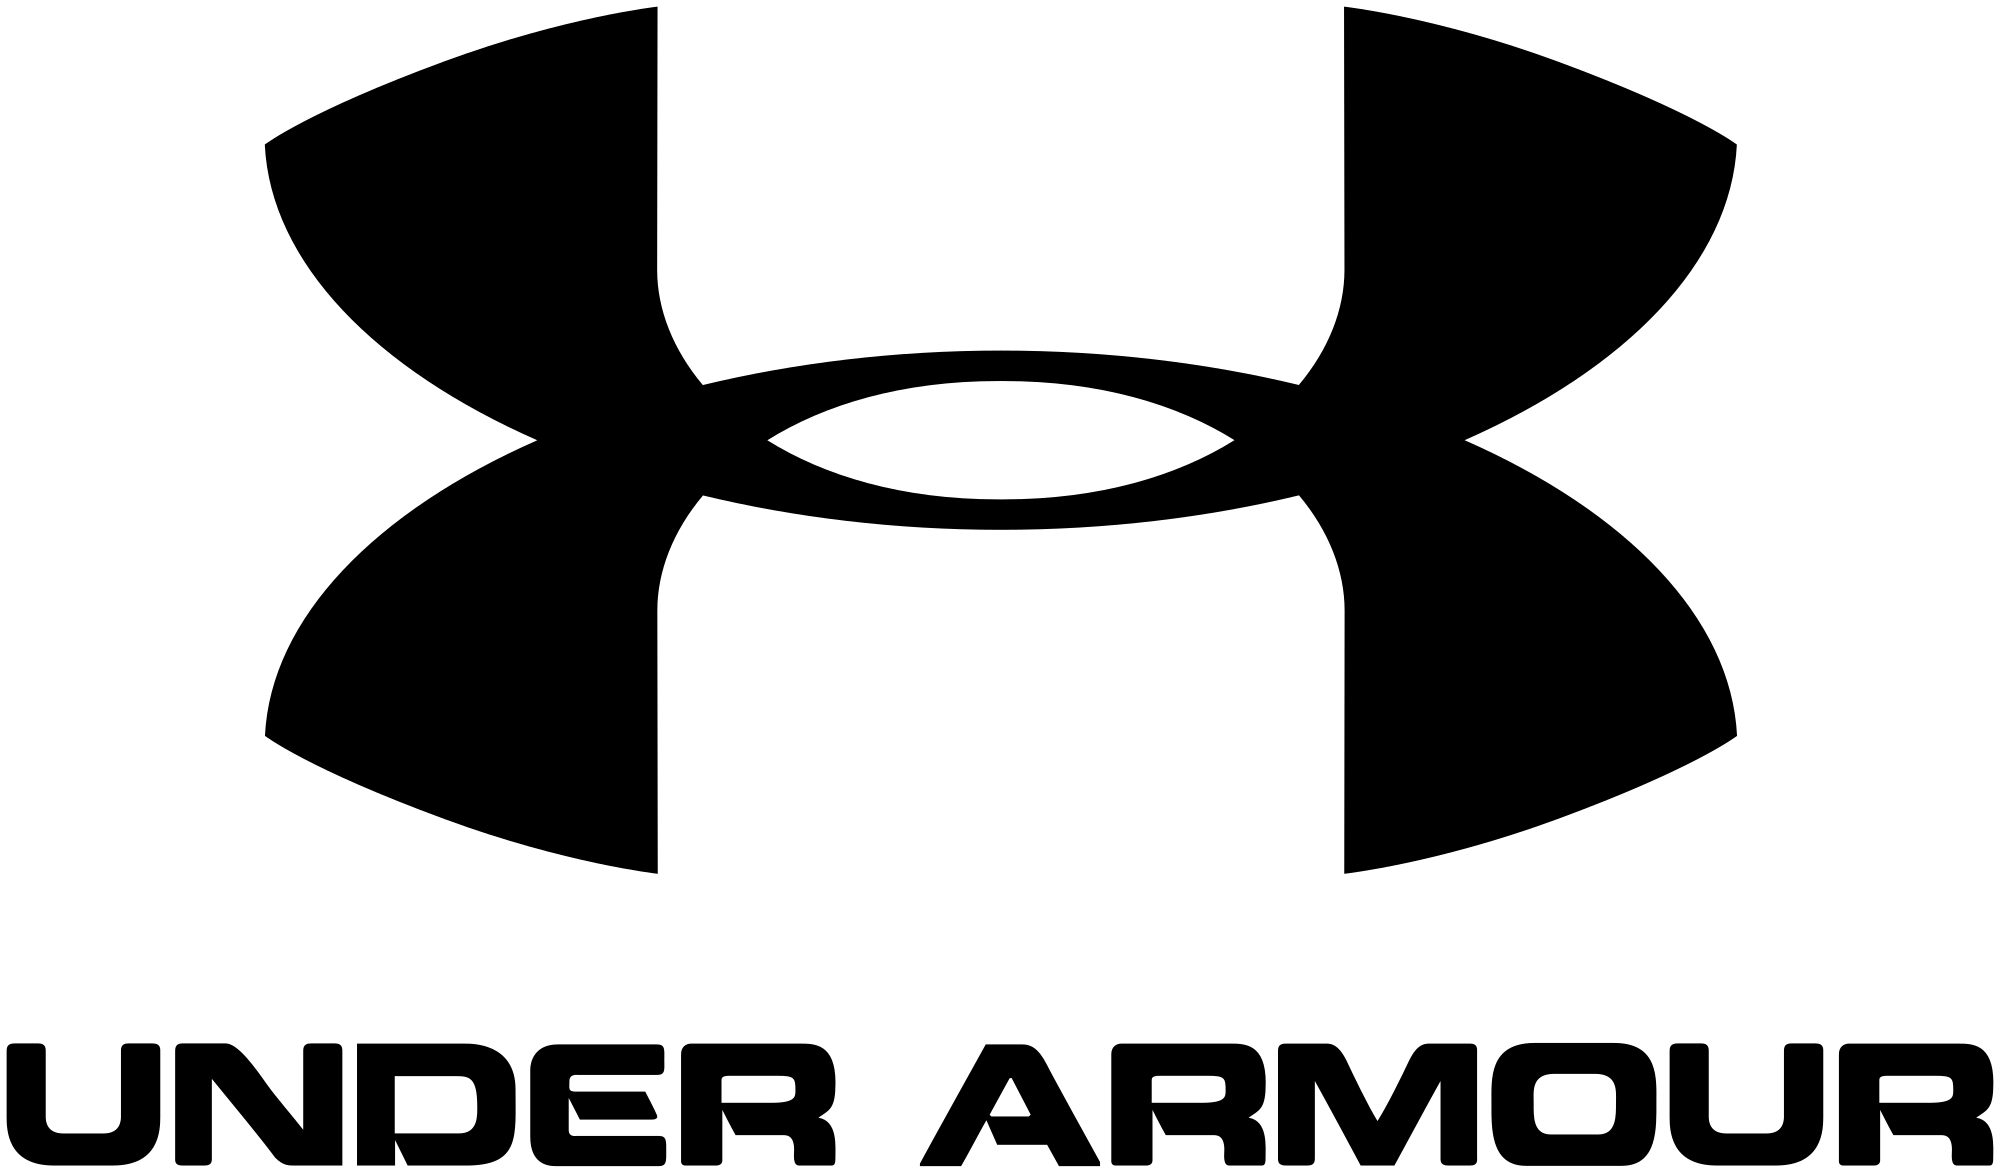 Right Now, You Can Save Money On Clothes And Athletic Wear! Under Armour Is  The Originator Of Performance Apparel U2013 Gear Engineered To Keep Athletes  Cool, ...